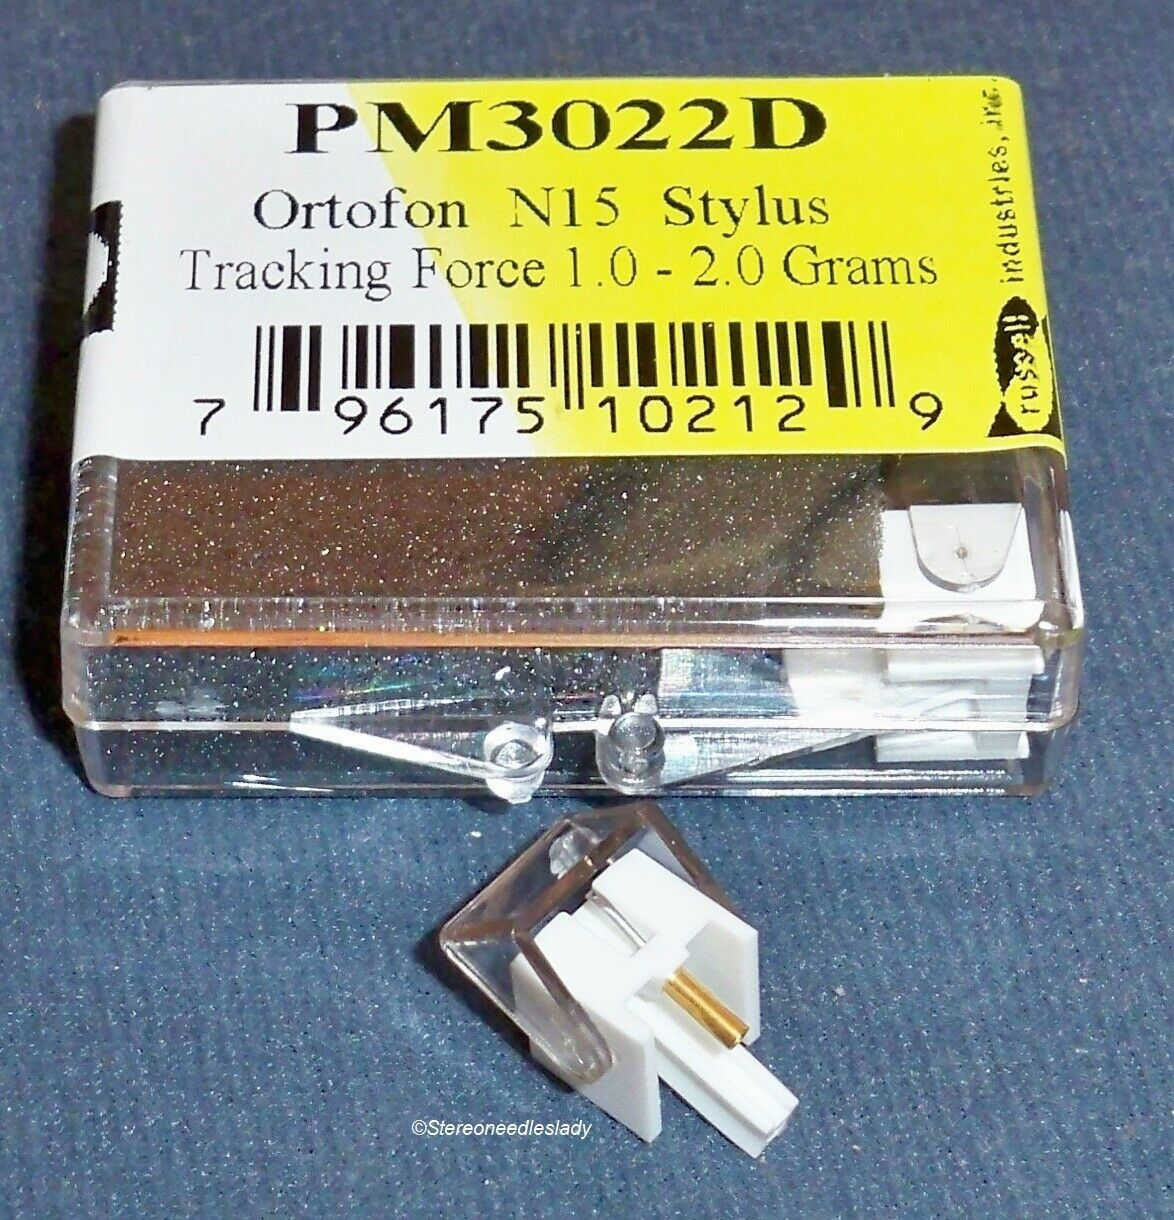 Electro-Voice, EV PM3022D Stylus Needle for ALL ORTOFON 15 Series Mark II